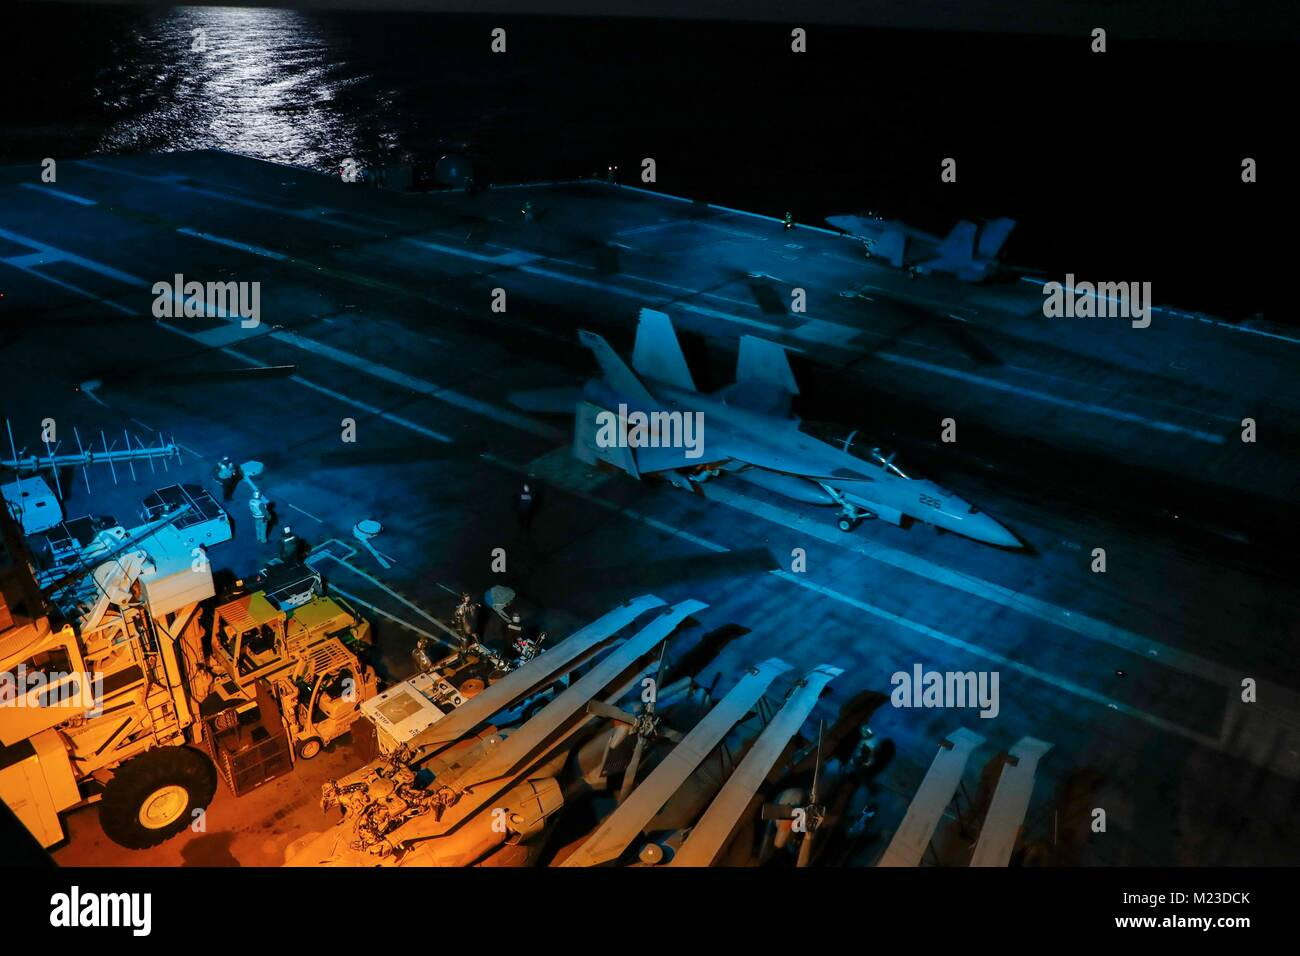 180131-N-EN275-0293 ATLANTIC OCEAN (Jan. 31, 2018) An F/A-18F Super Hornet assigned to the 'Gladiators' - Stock Image